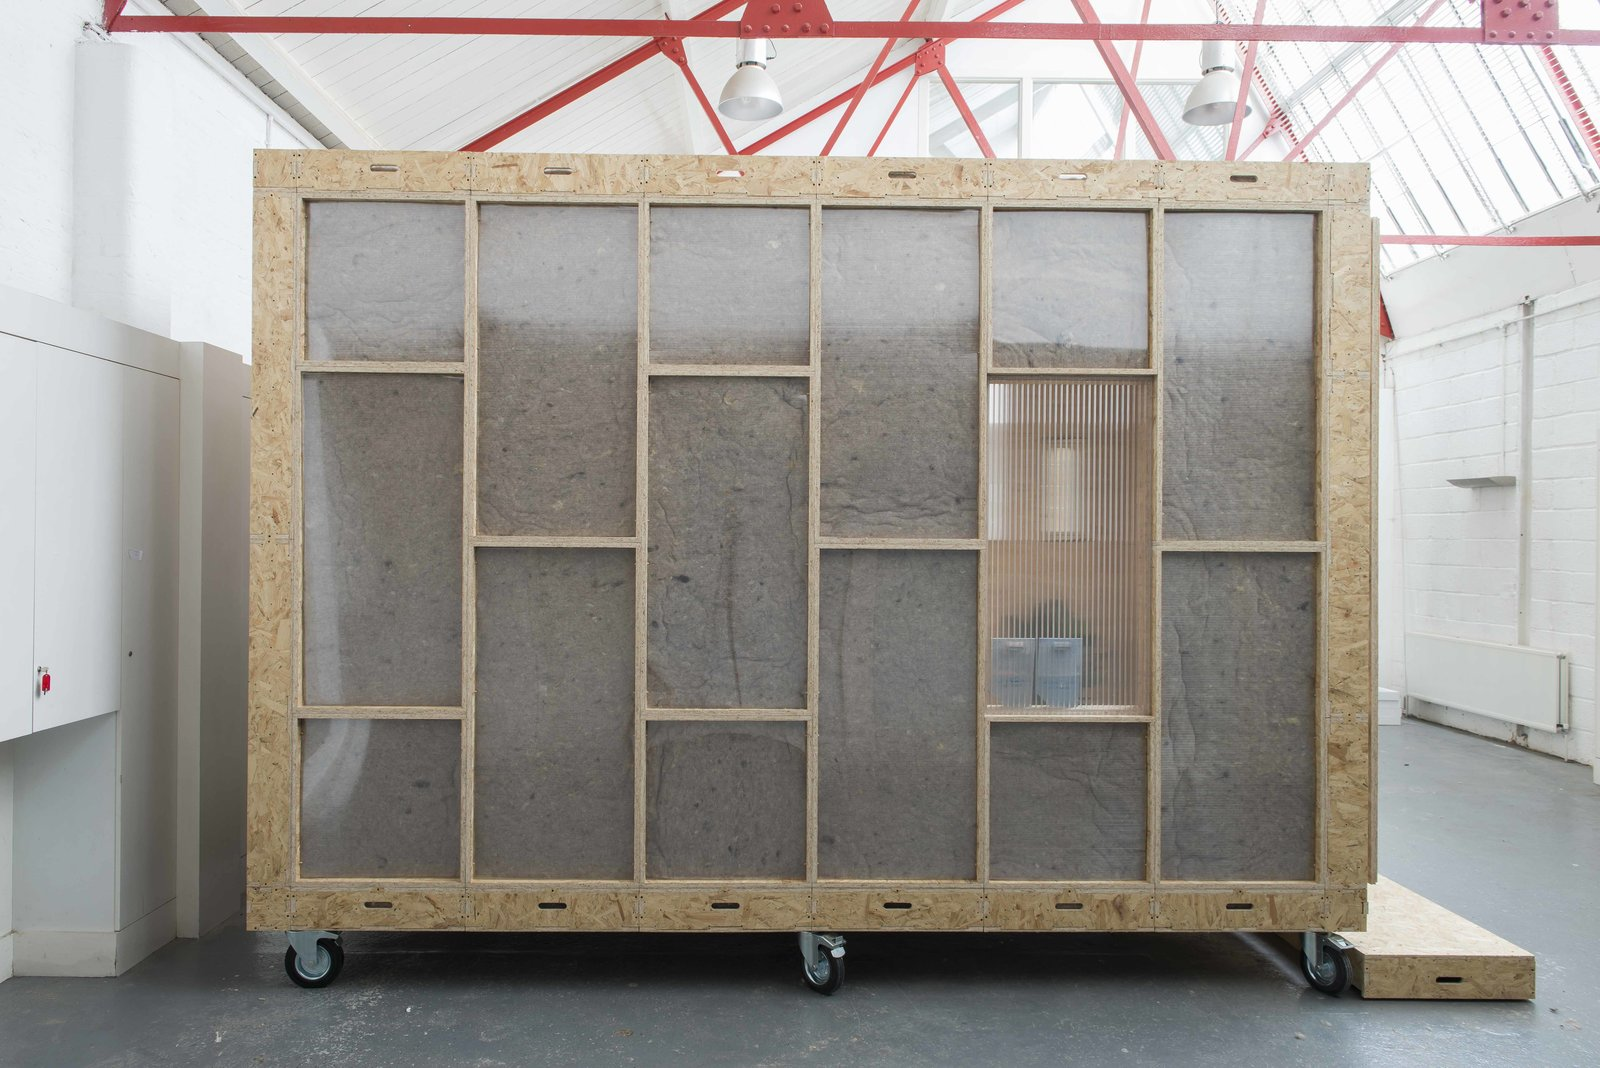 Shed & Studio  Photo 4 of 9 in A New Concept For Modular, Affordable Housing Is Coming to London's Vacant Buildings